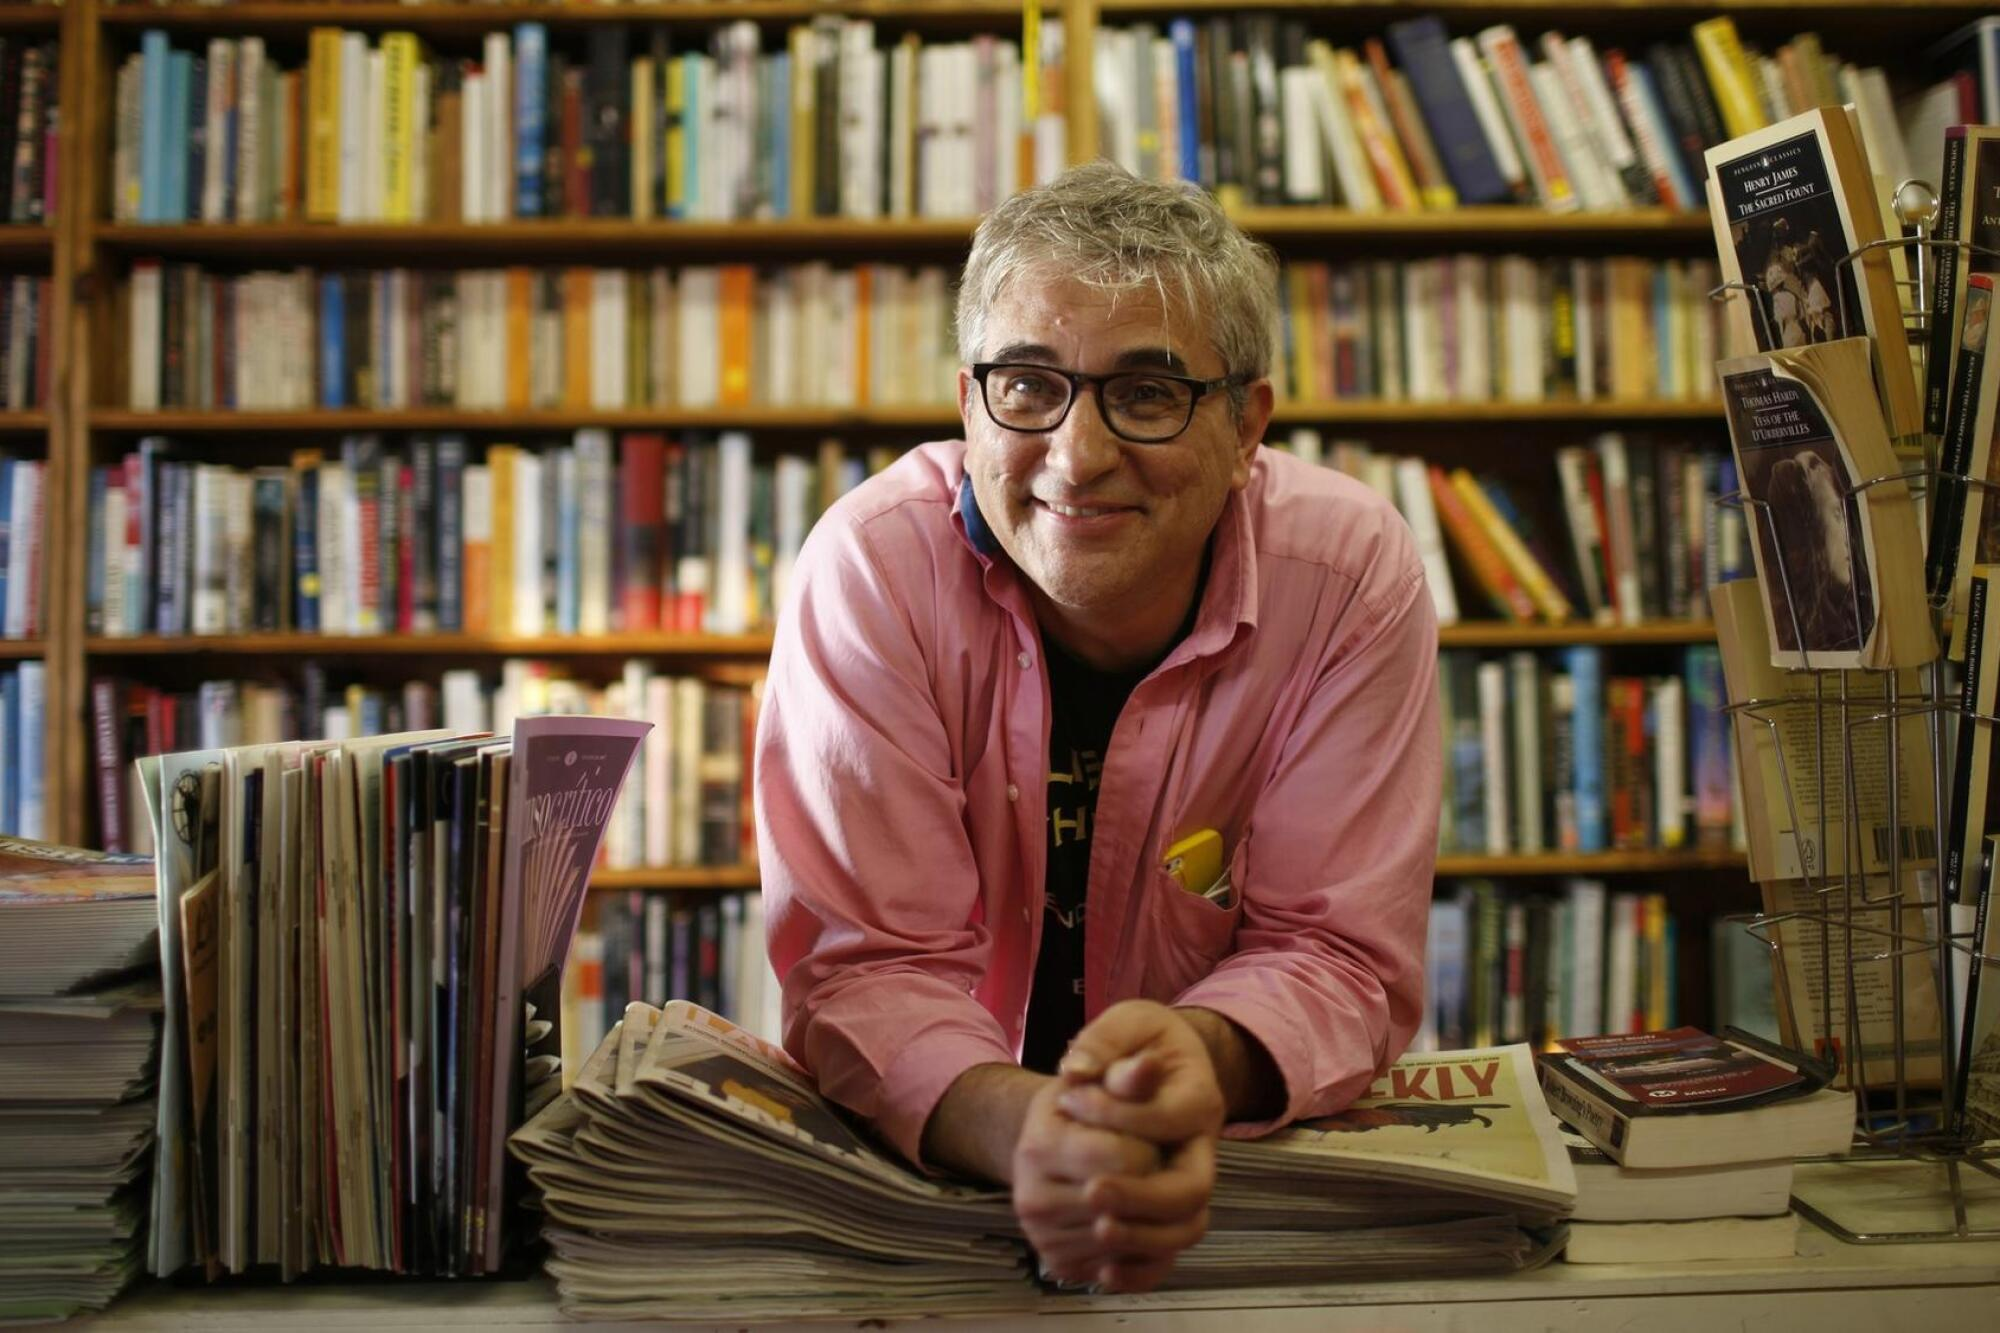 David Kipen leans on a stack of publications on a table with shelves of books in the background.